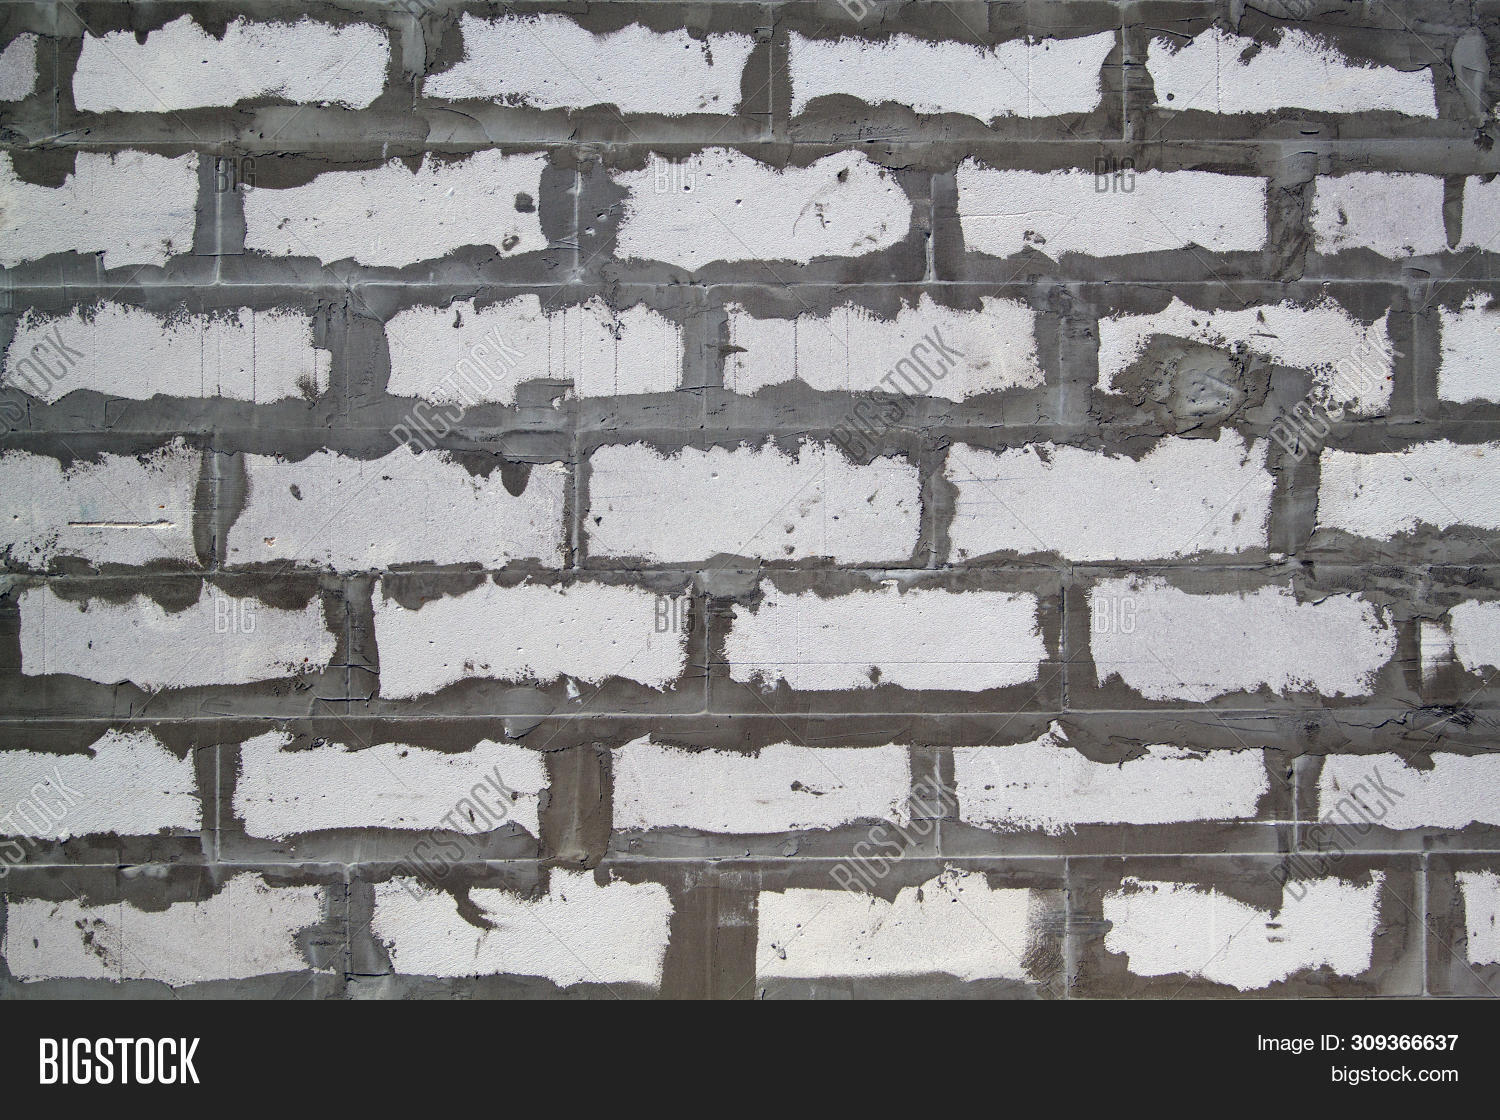 abstract,aerated,architecture,autoclaved,backdrop,background,block,brick,brickwork,building,cement,close-up,closeup,concrete,construction,design,detail,dirty,exterior,facade,foam,foamed,gas,gas-block,gray,grunge,house,masonry,material,nobody,old,pattern,rough,rustic,space,stone,structure,surface,texture,textured,urban,wall,wallpaper,white